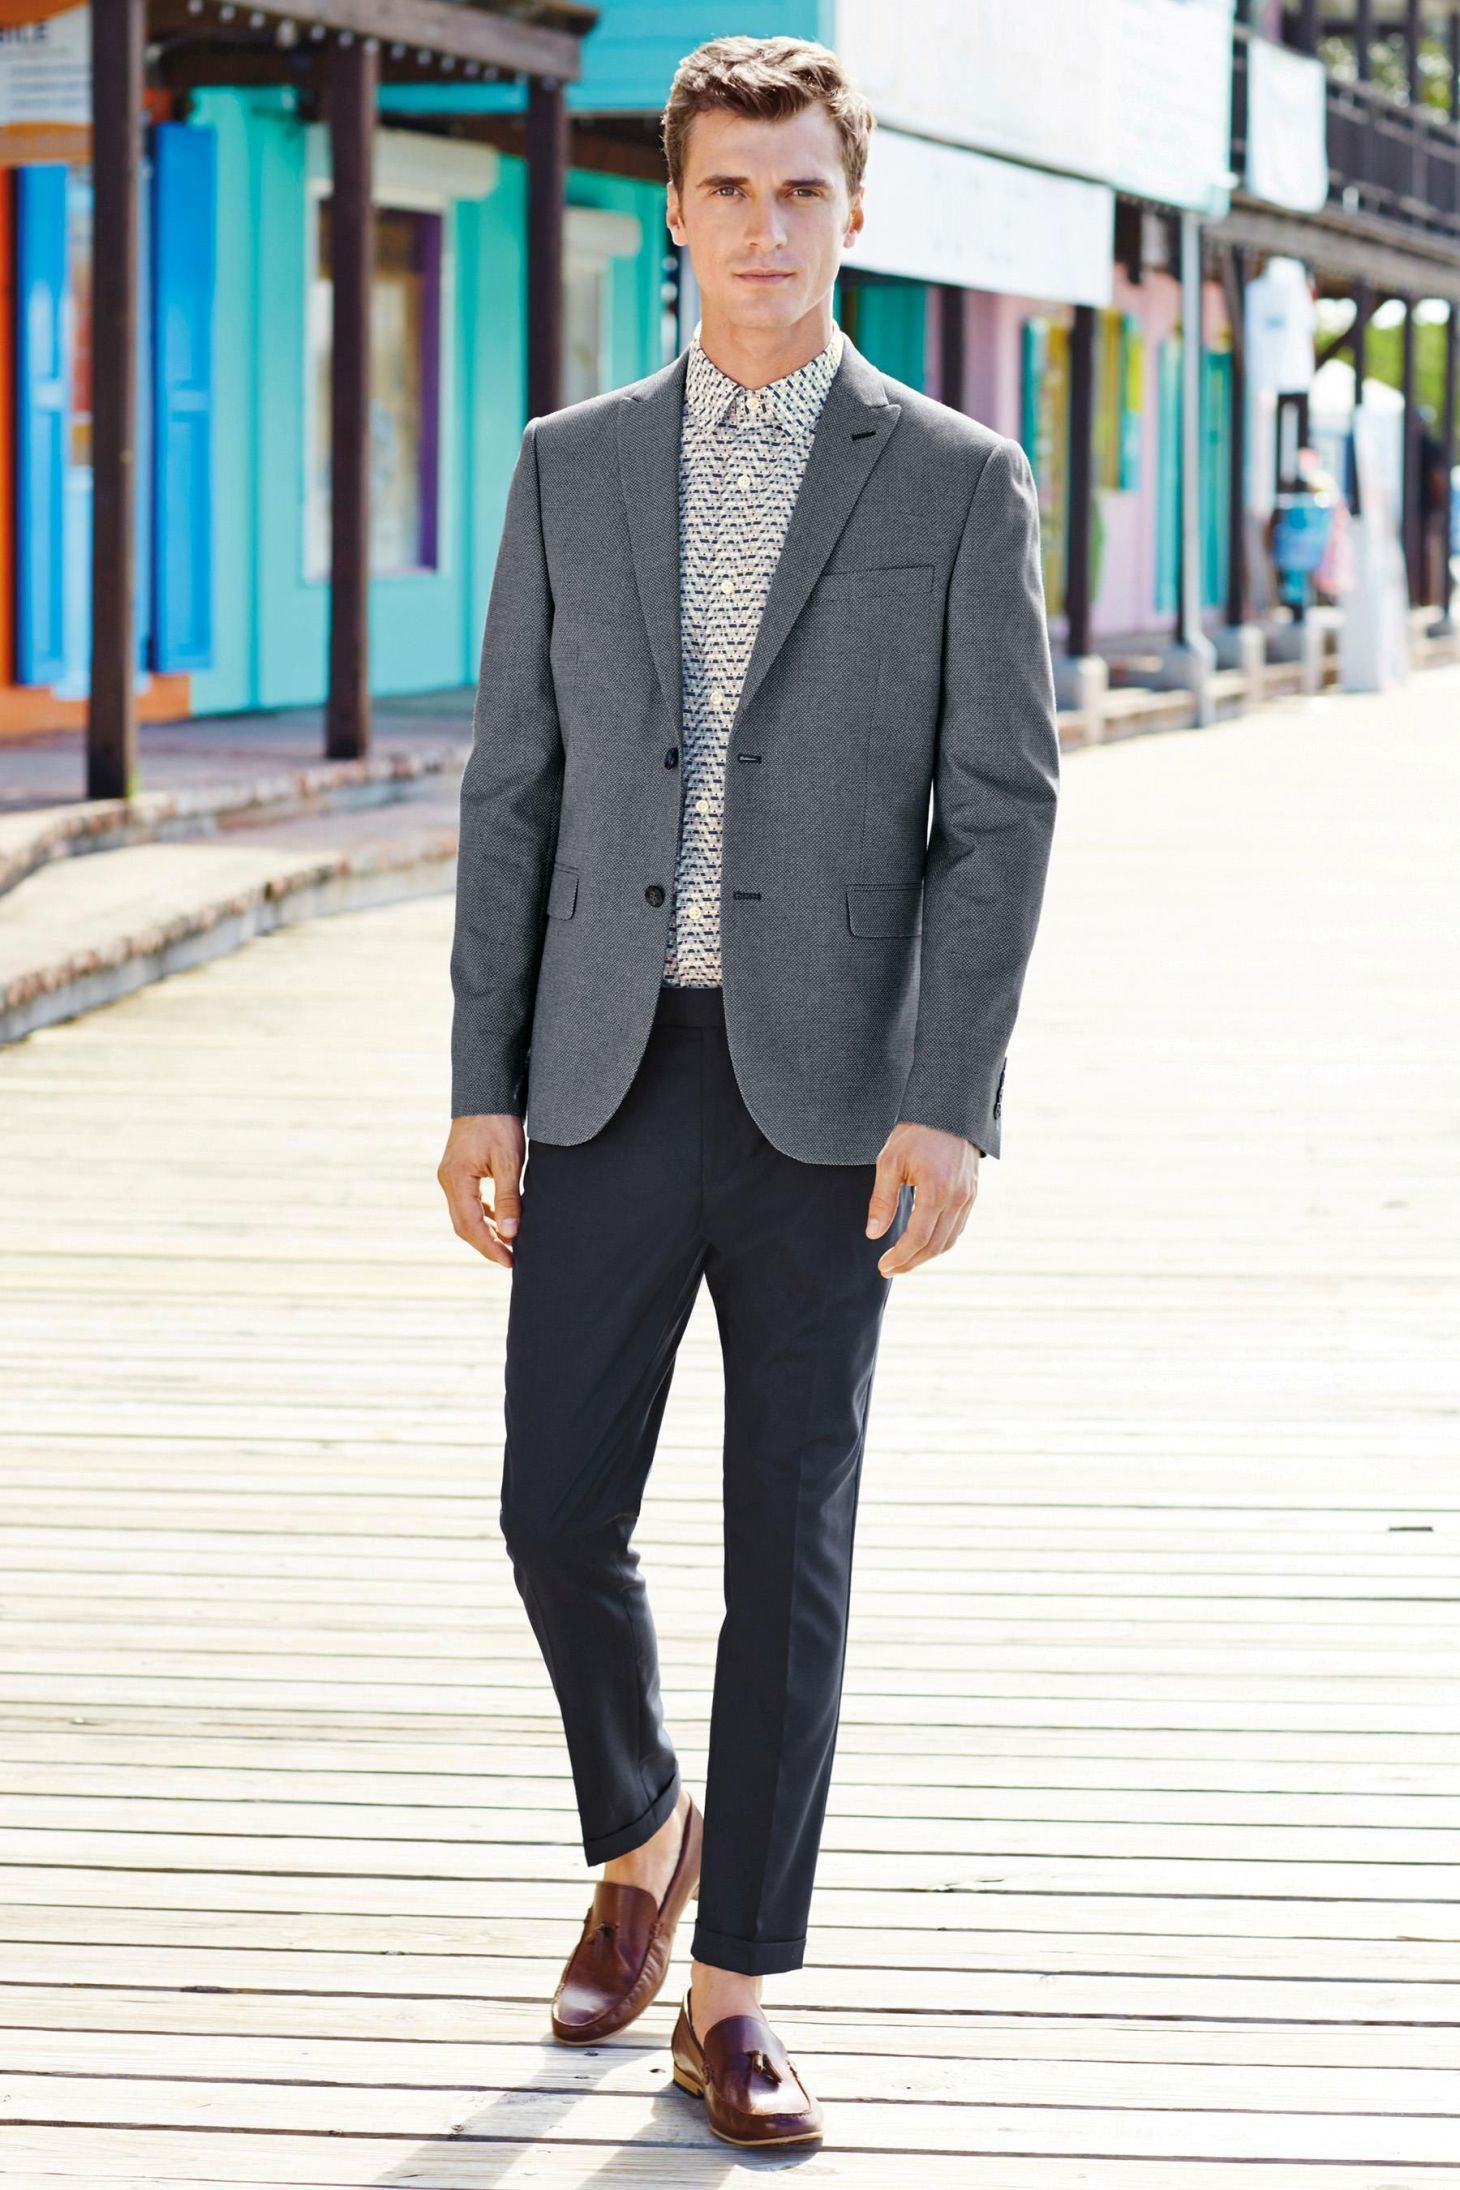 How To Wear a Grey Blazer With Charcoal Dress Pants | Men's Fashion